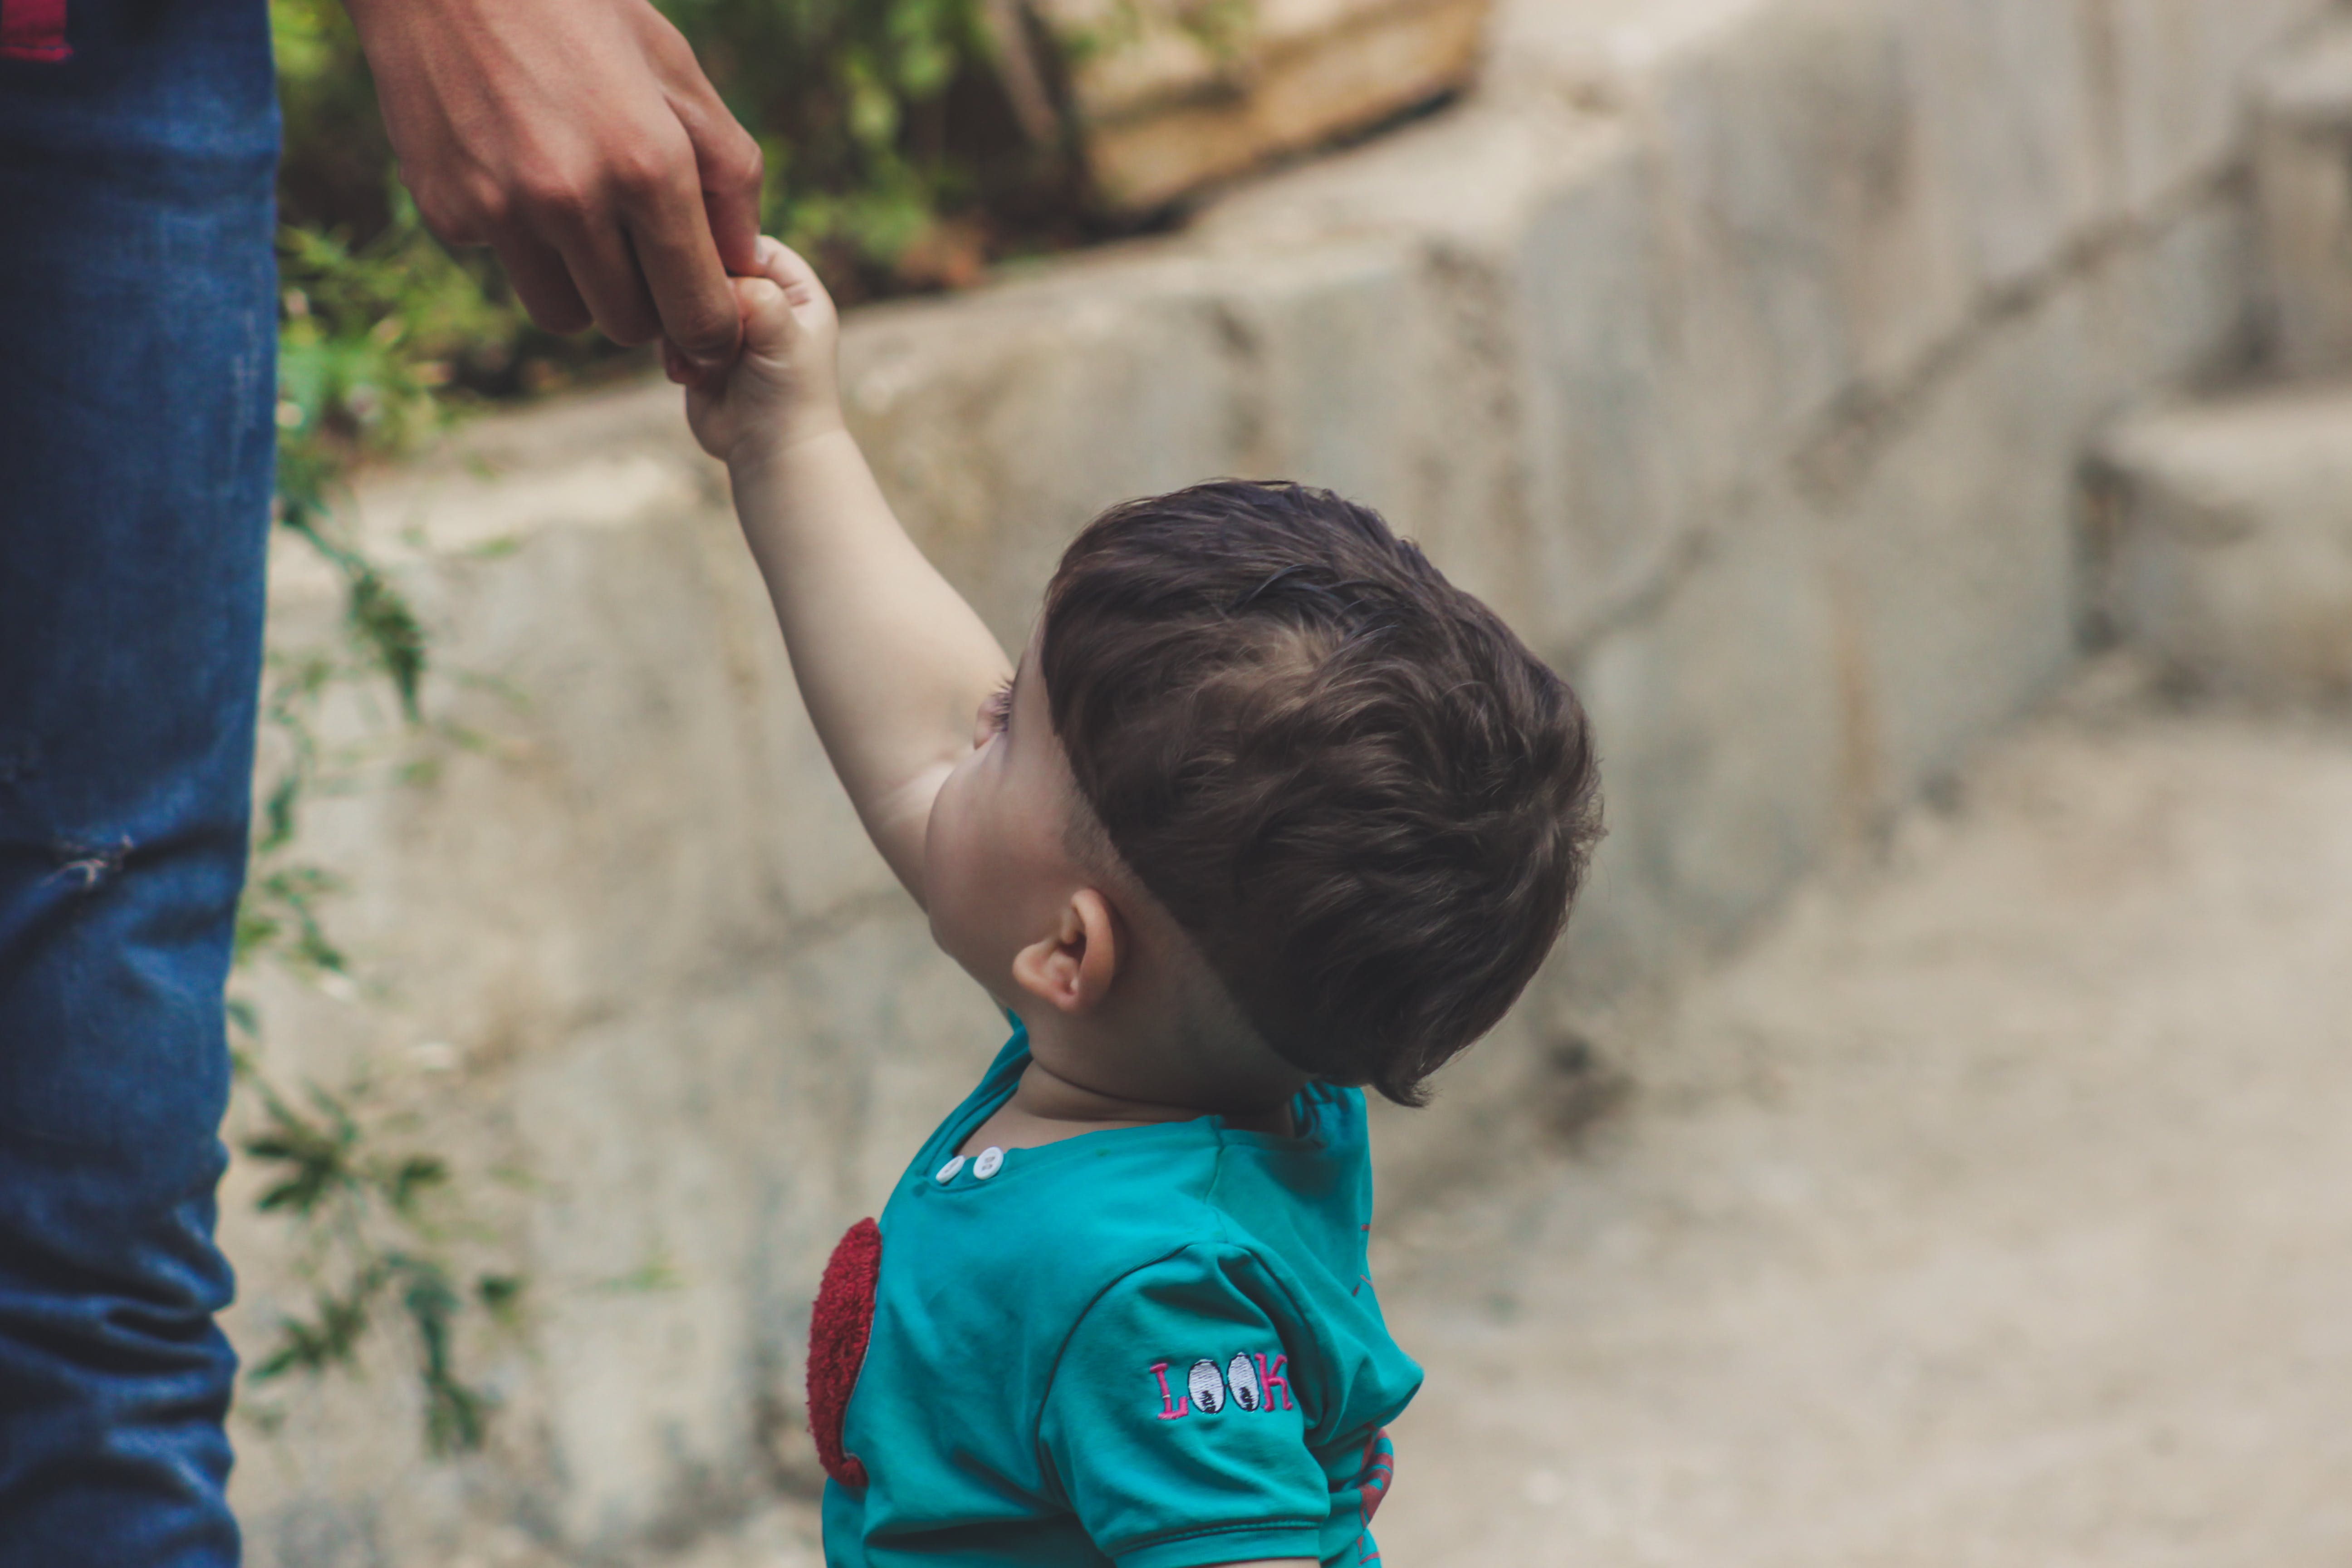 Photography of Baby Holding The Hand of Person